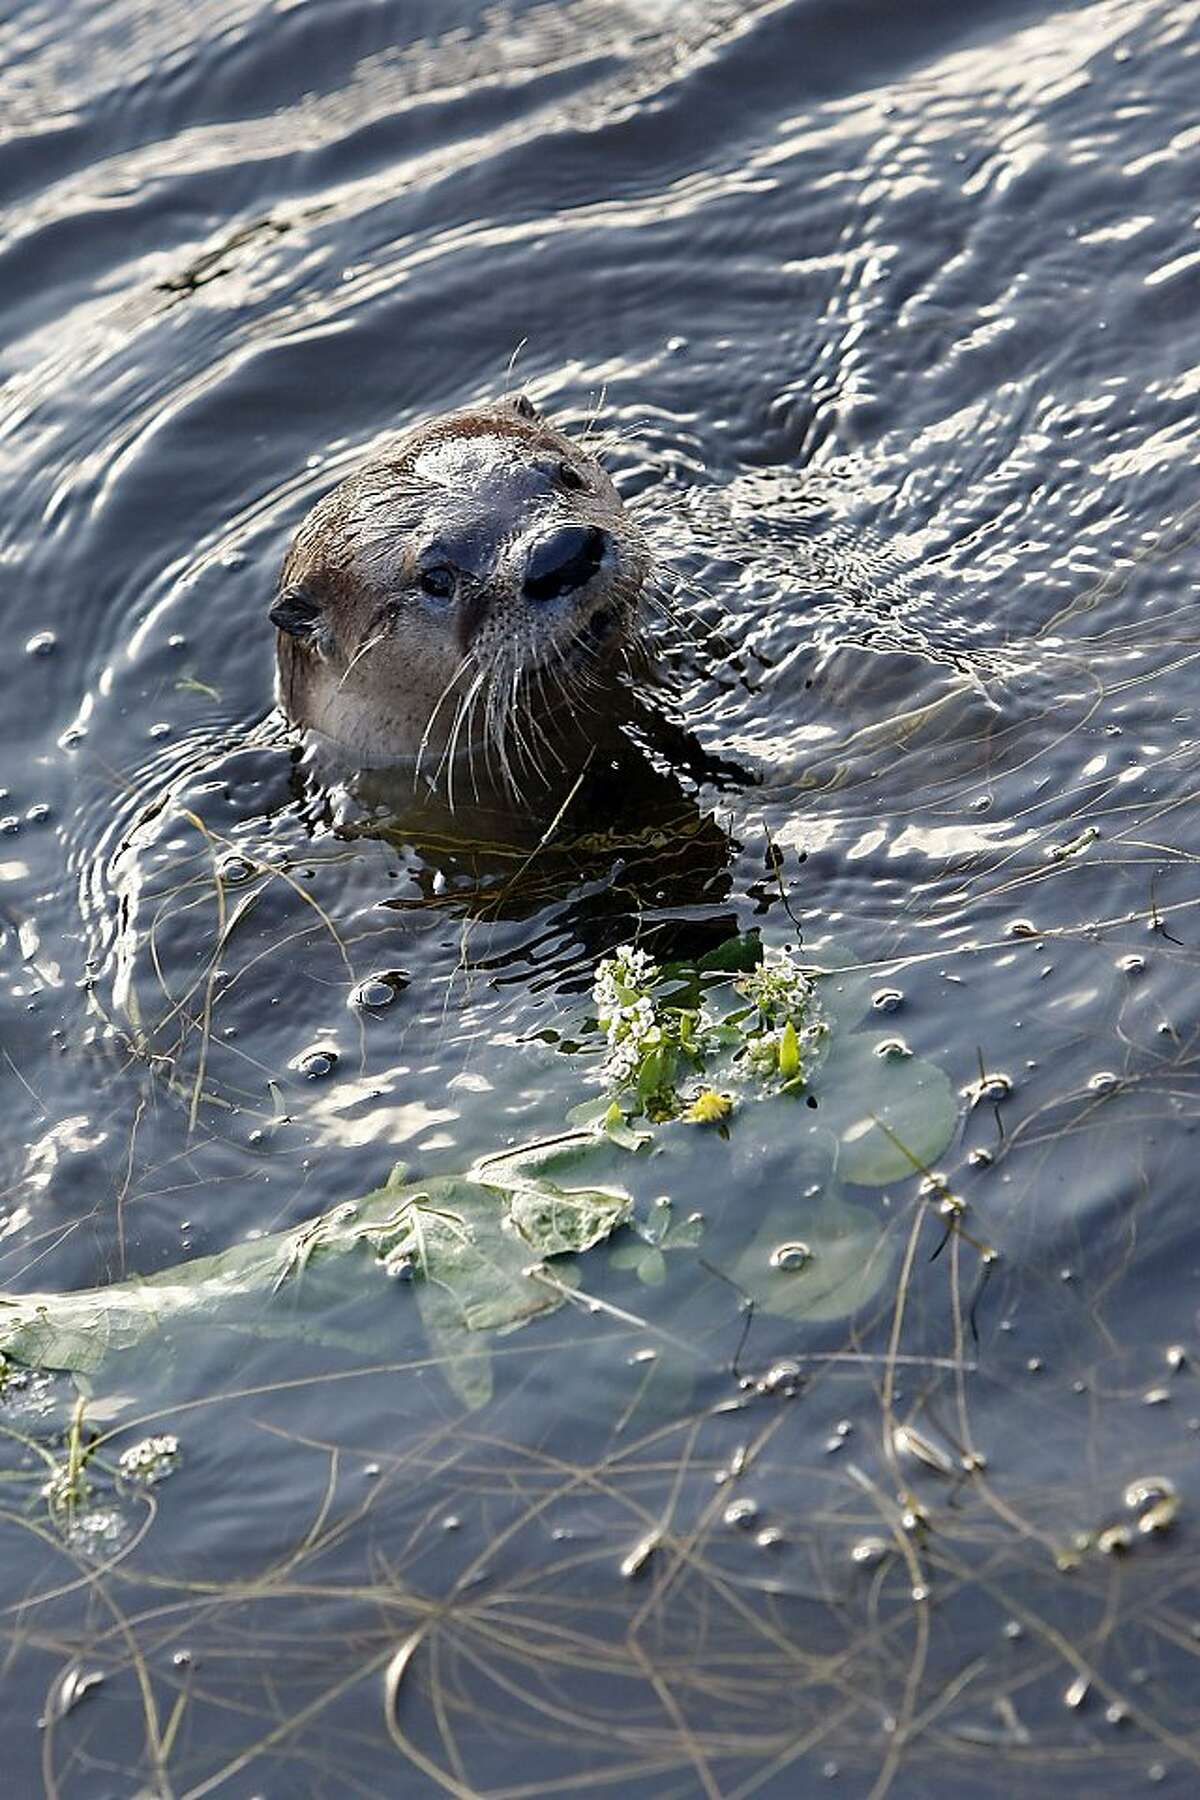 A River Otter named Sutro Sam by local biologists searches for fish to feed on at the Sutro Baths on December 30, 2012 in San Francisco, Calif.